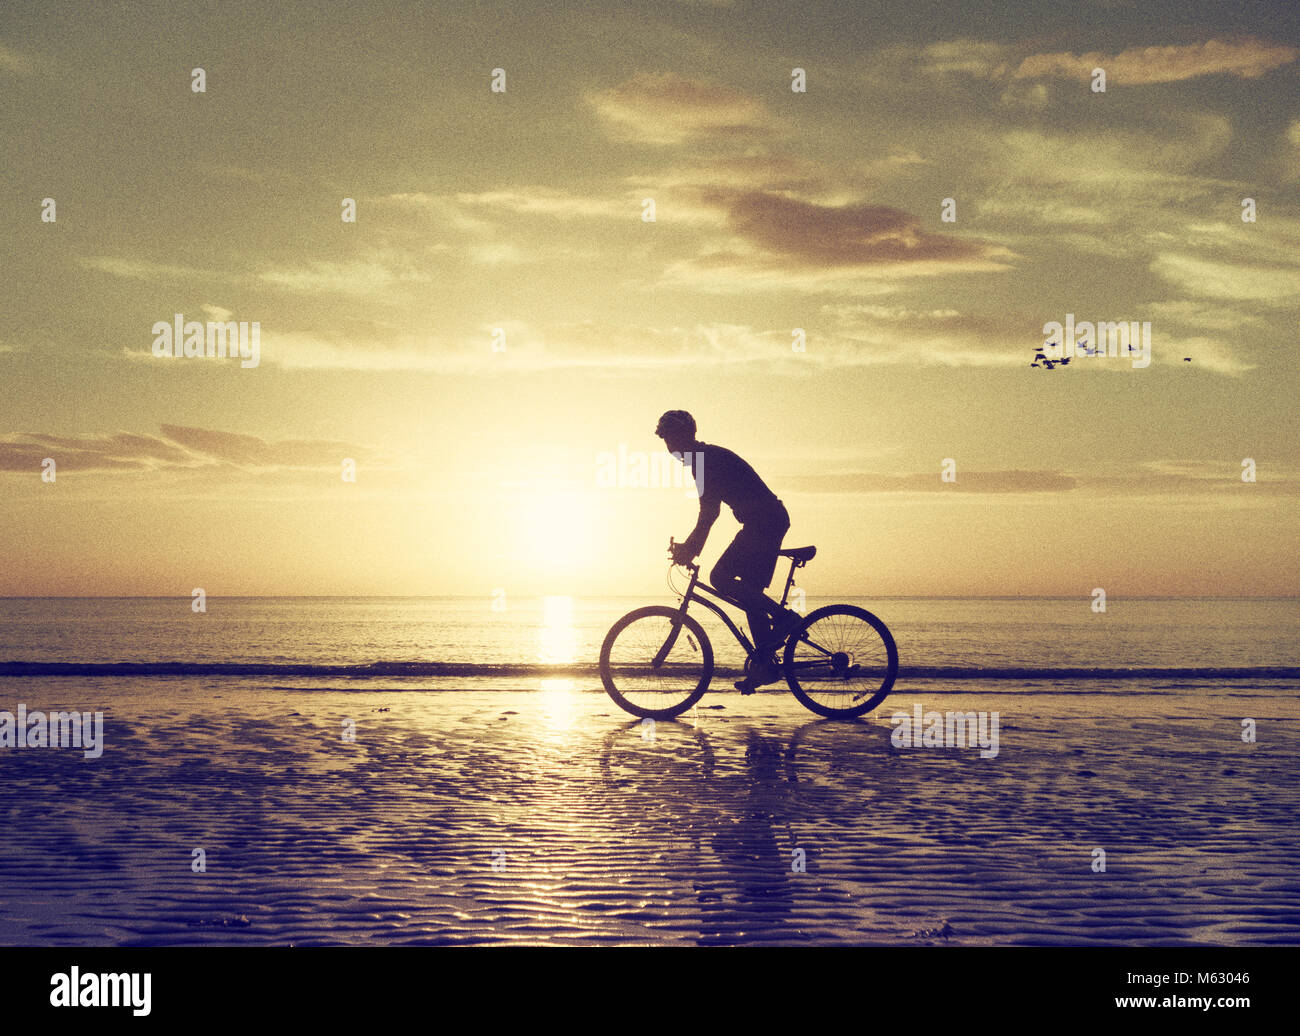 Mountain biker on beach at sunrise with birds flying behind. - Stock Image